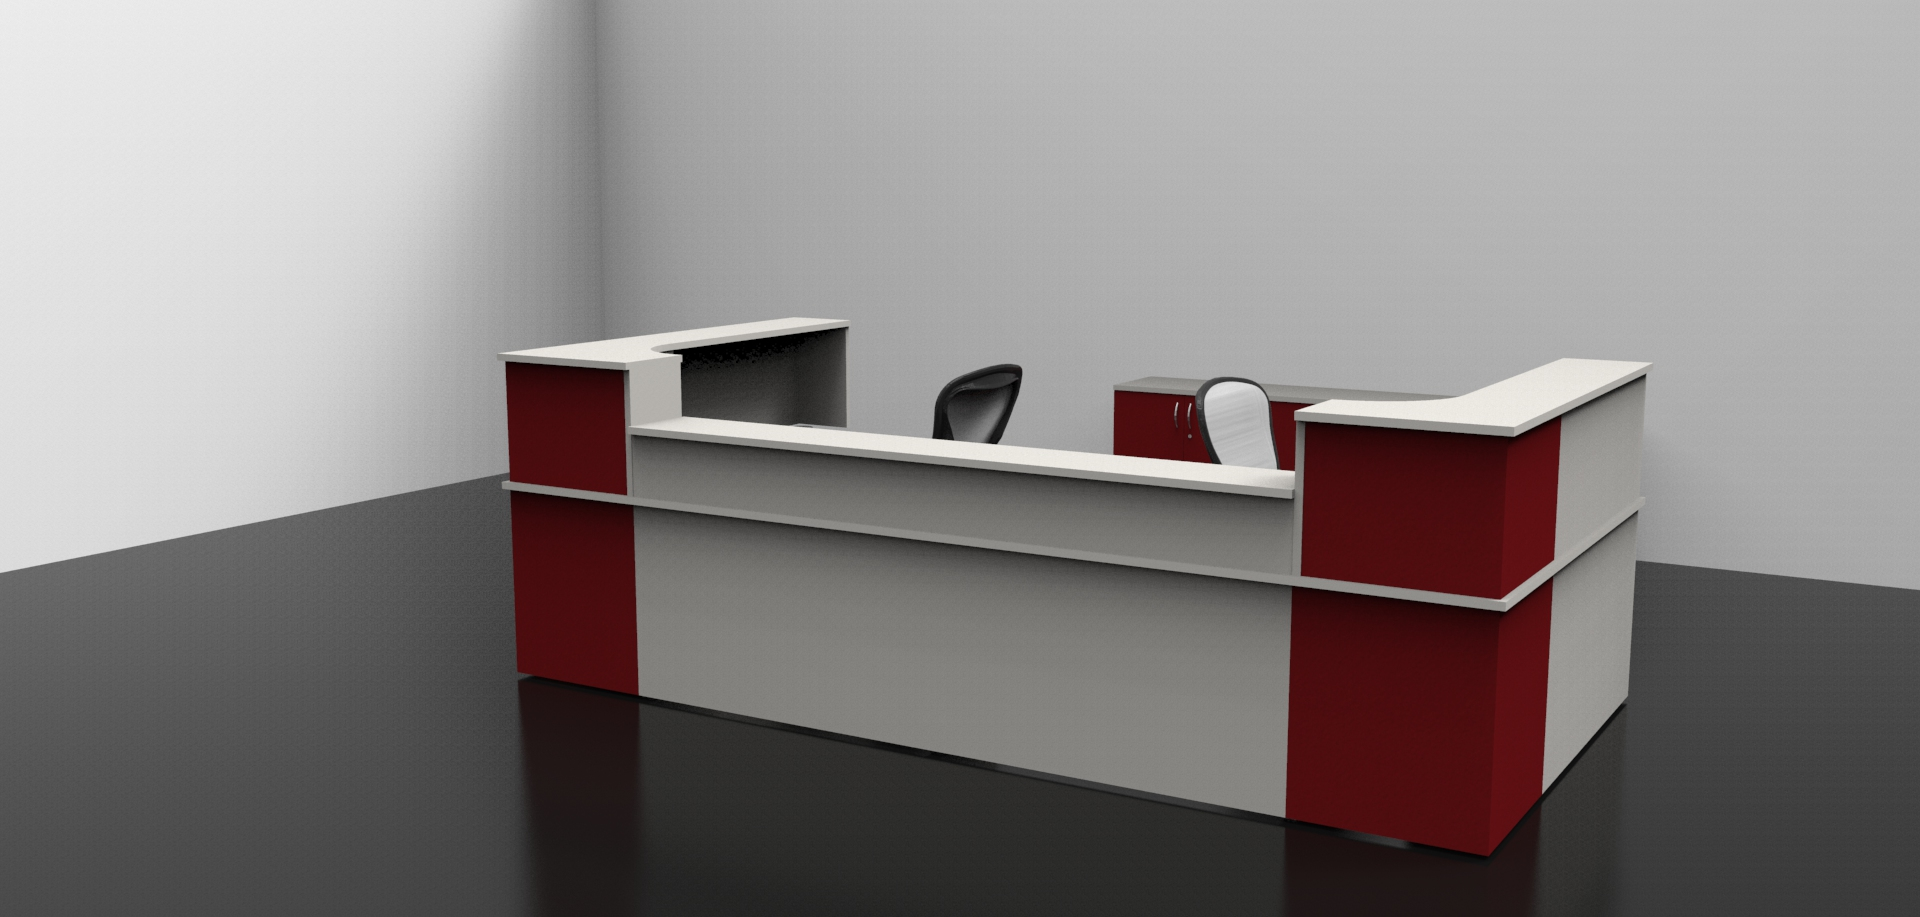 Photo arnold reception desk images home office modern for Office design guidelines uk